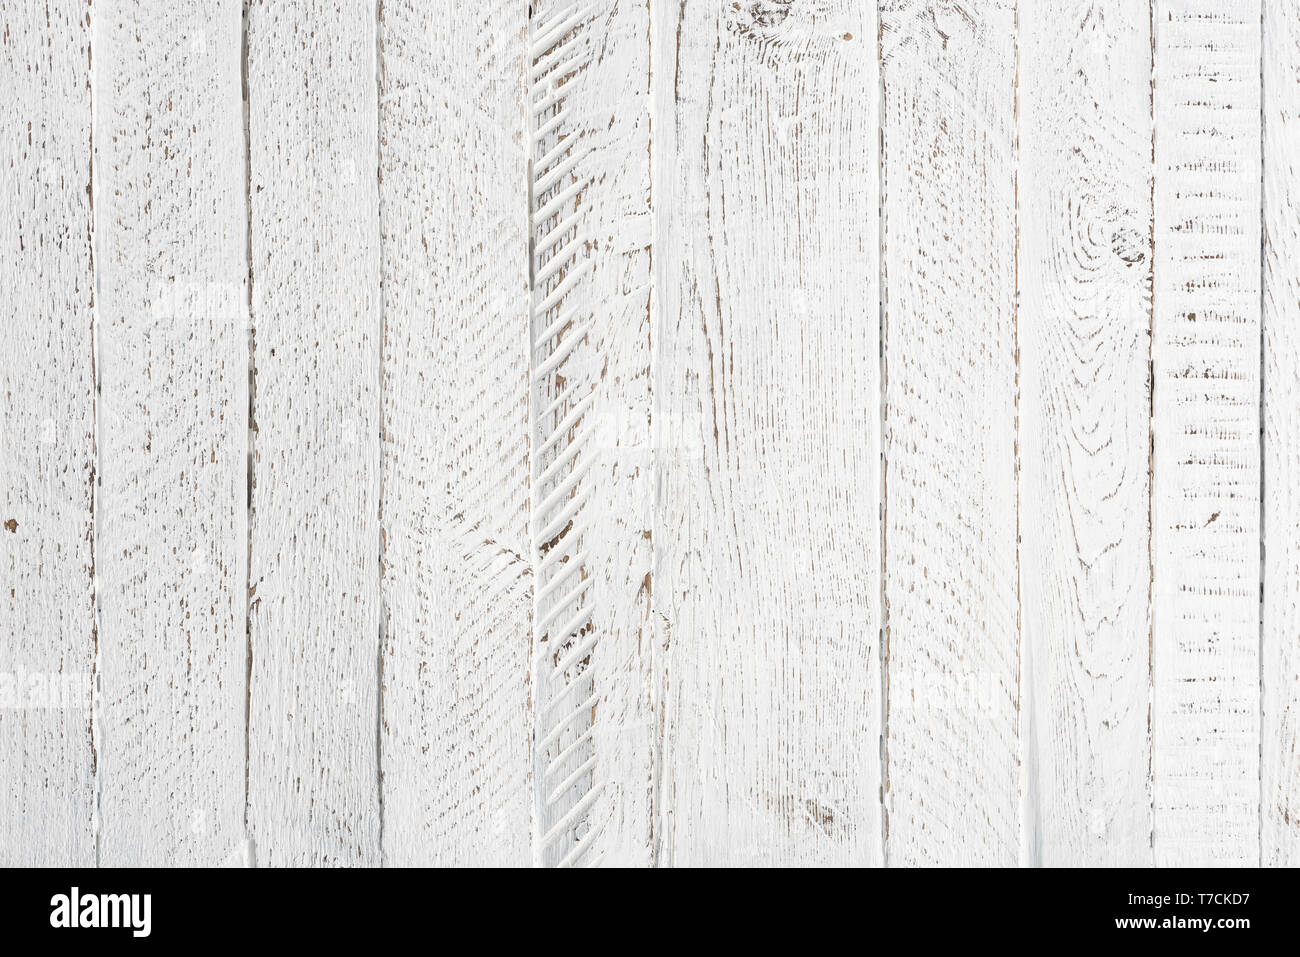 White wooden table texture background - Stock Image